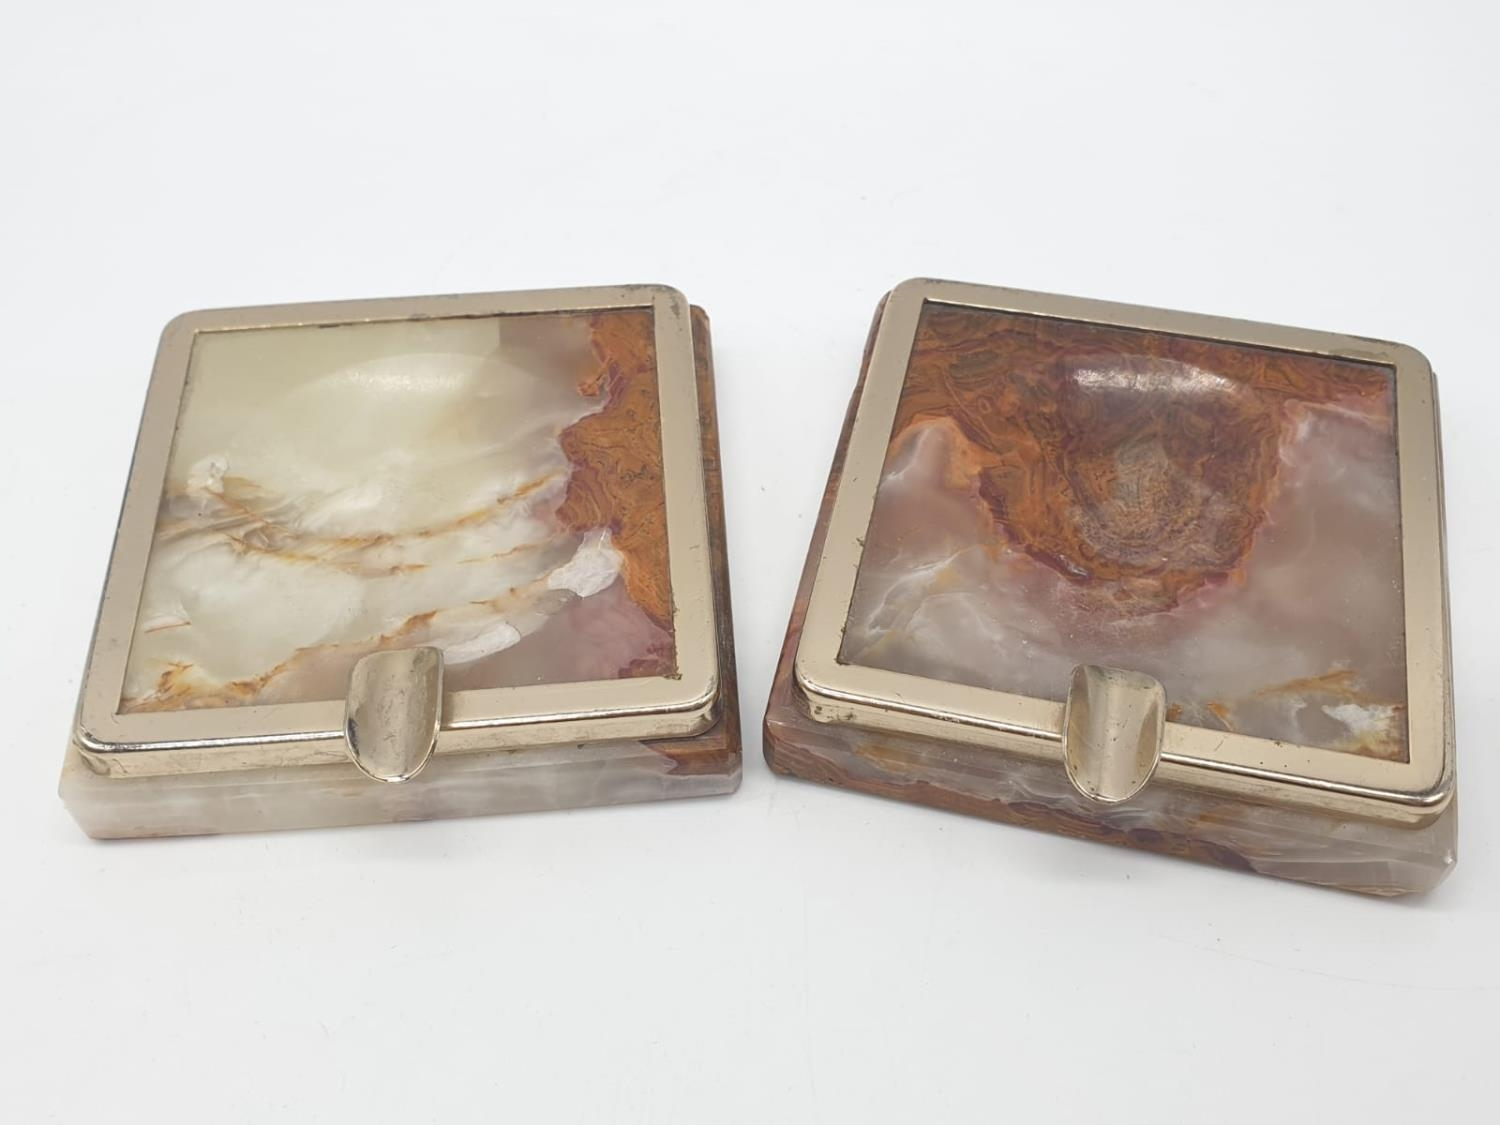 An onyx cigarette box, lighter and 2 onyx ash trays (small chip on cigarette box lid). - Image 14 of 16